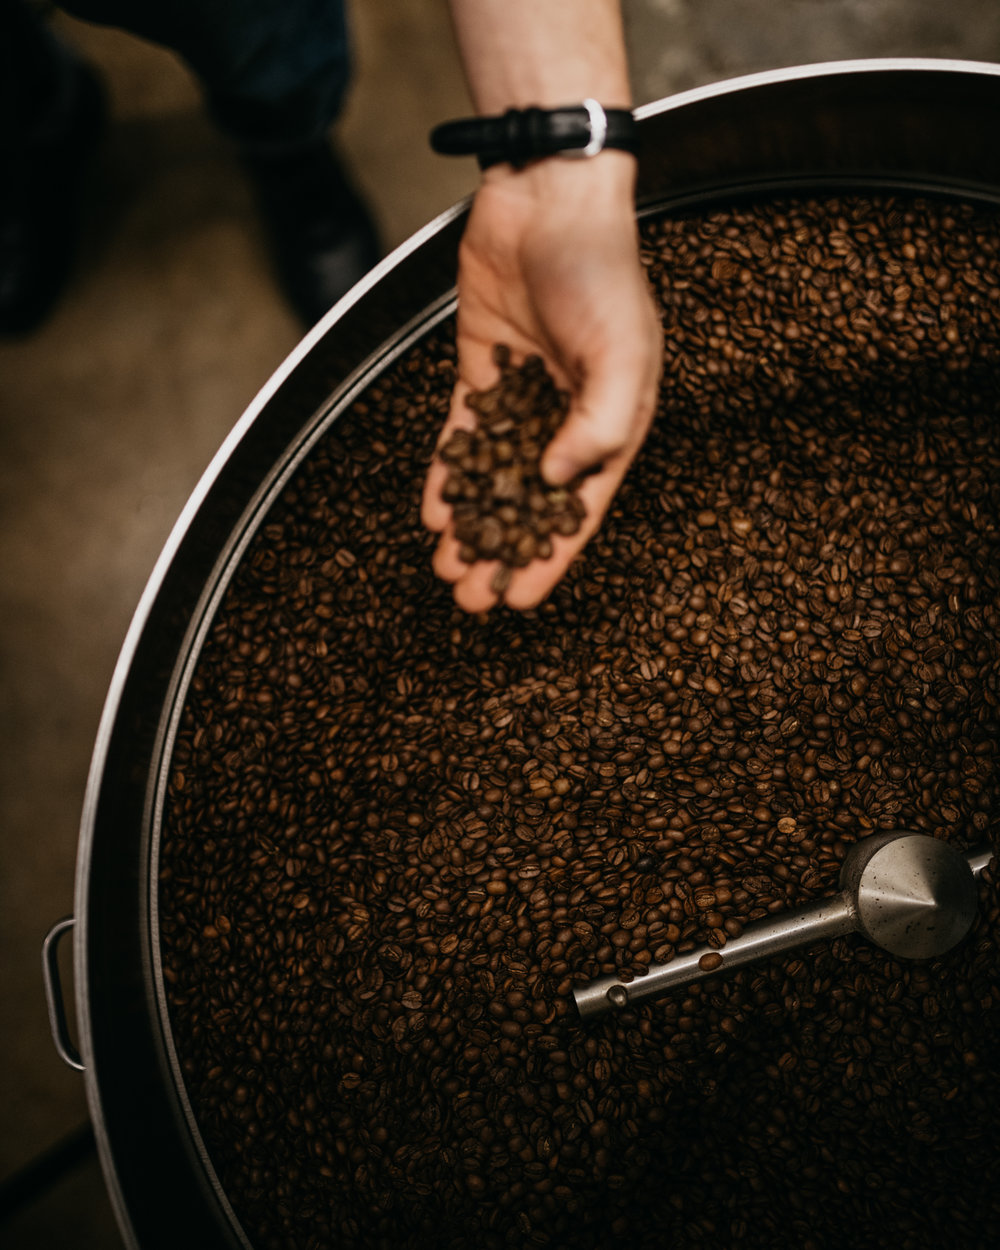 Photo of coffee beans being cooled after roasting